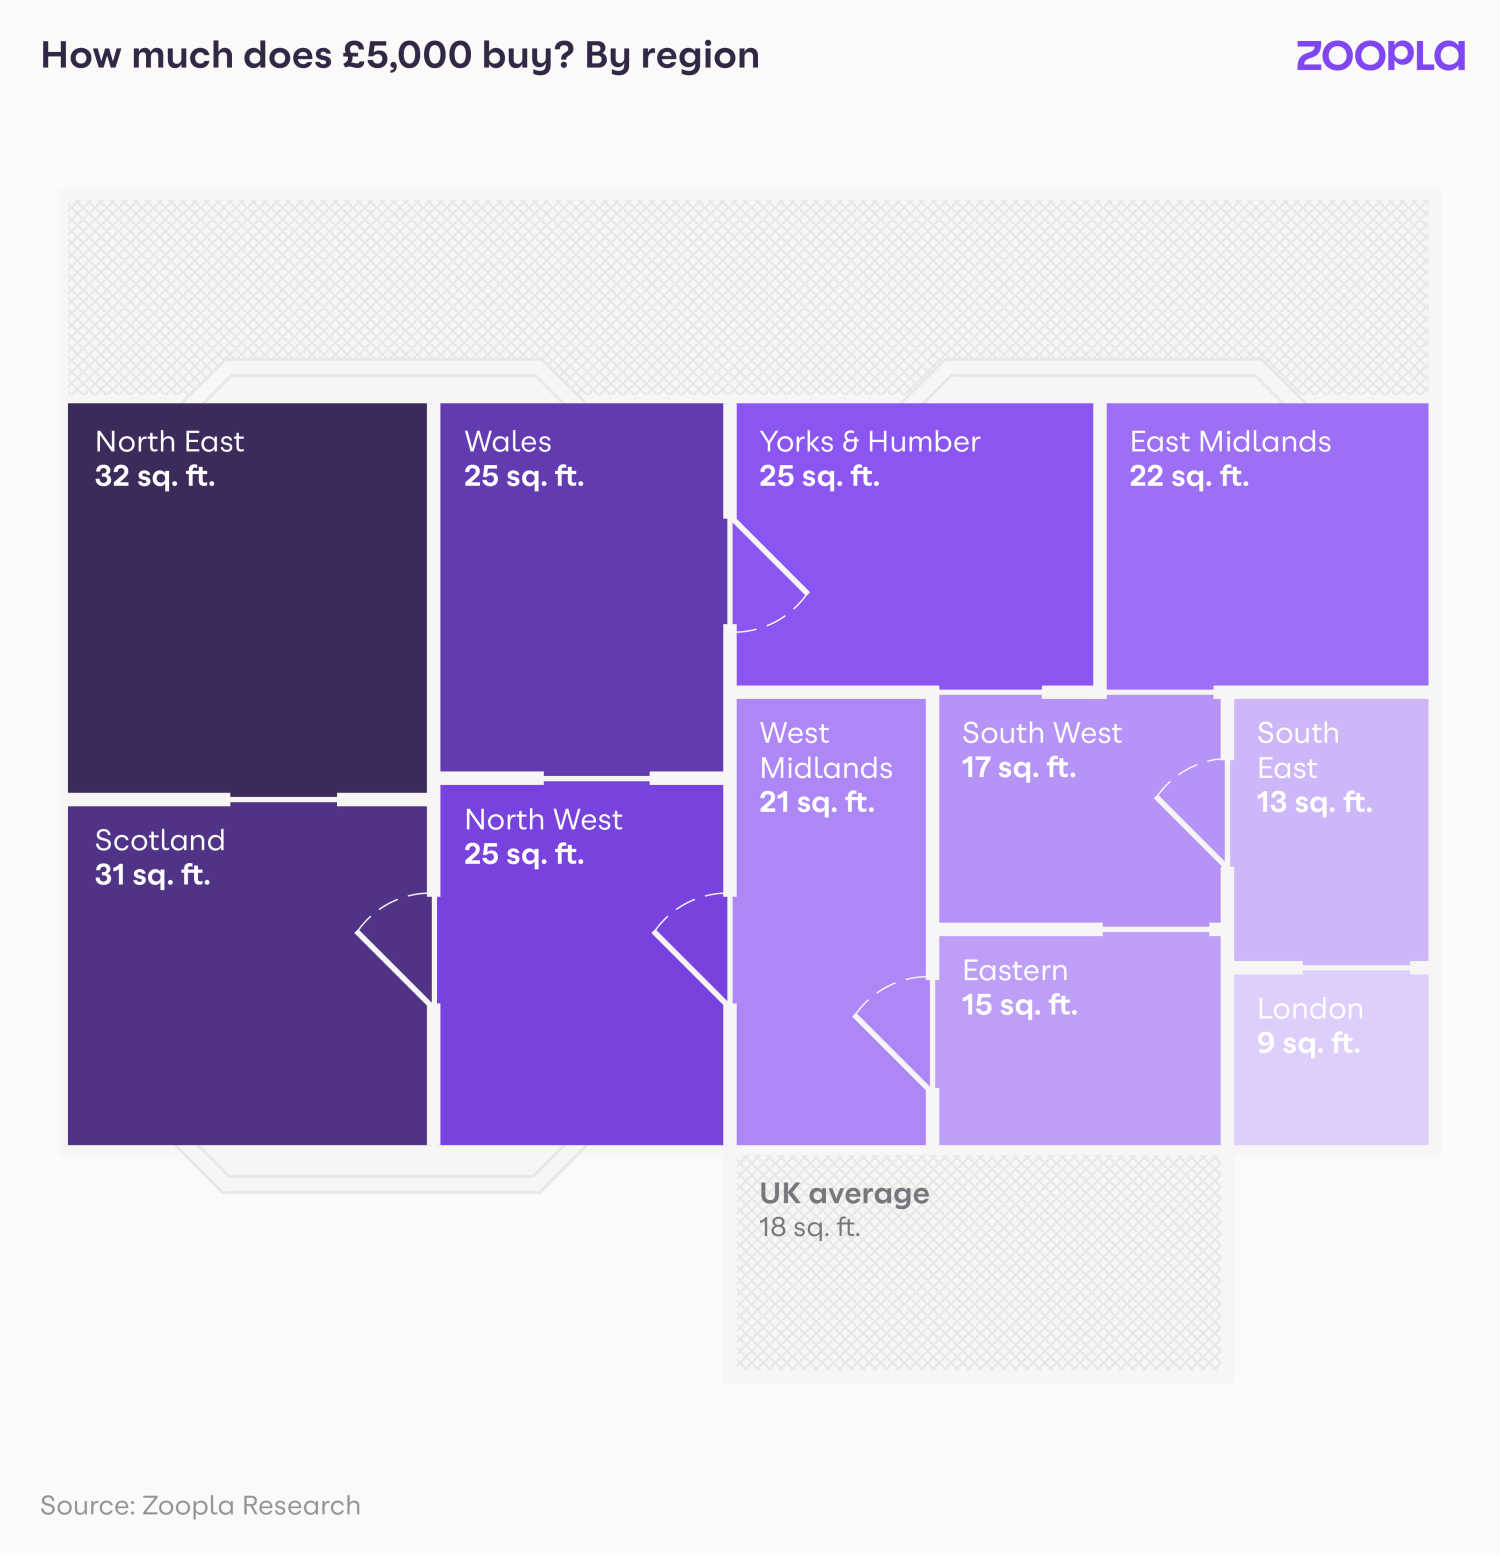 Image shows how much floorspace £5,000 can buy you in different areas.